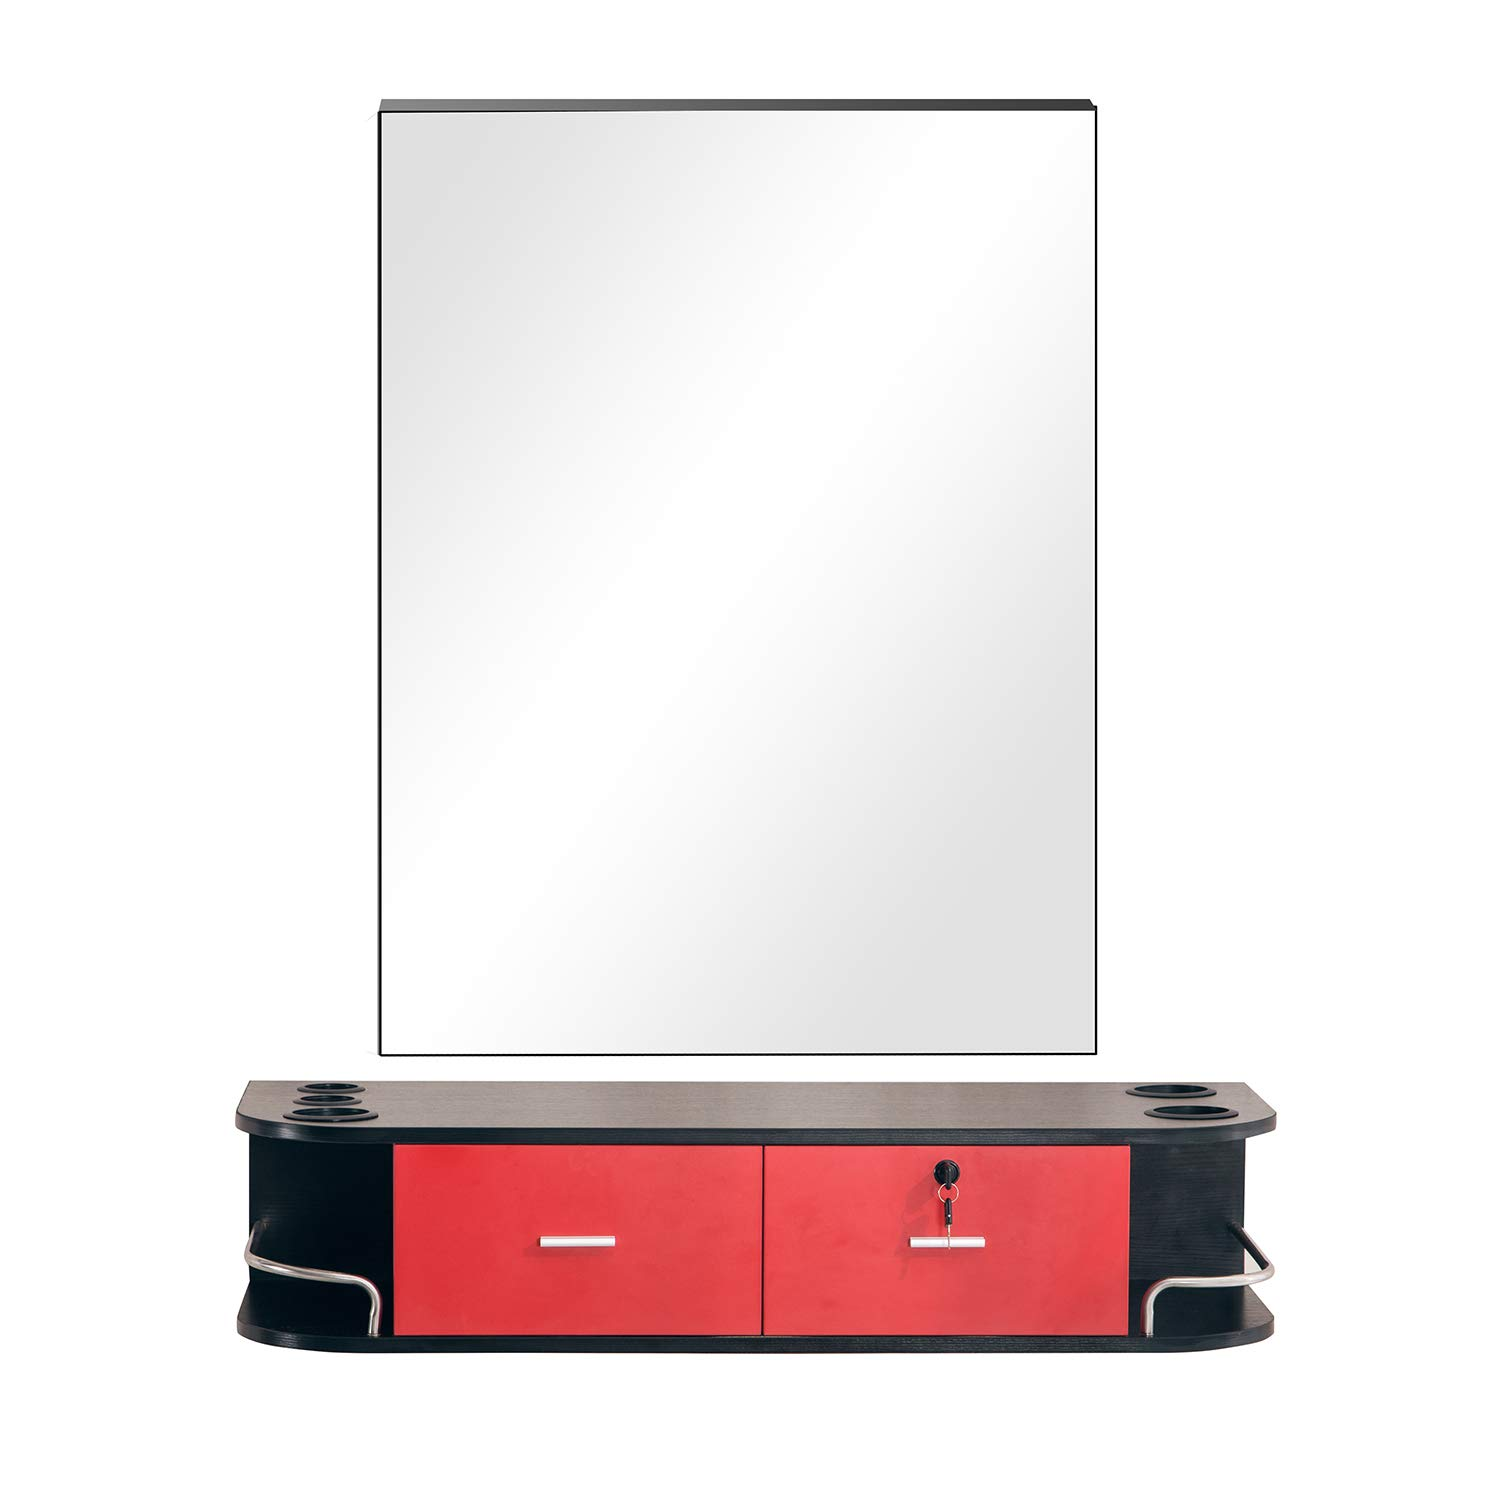 Barberpub Locking Wall Mount Styling Barber Station w/mirror Beauty Spa Salon Furniture (Black&Red)